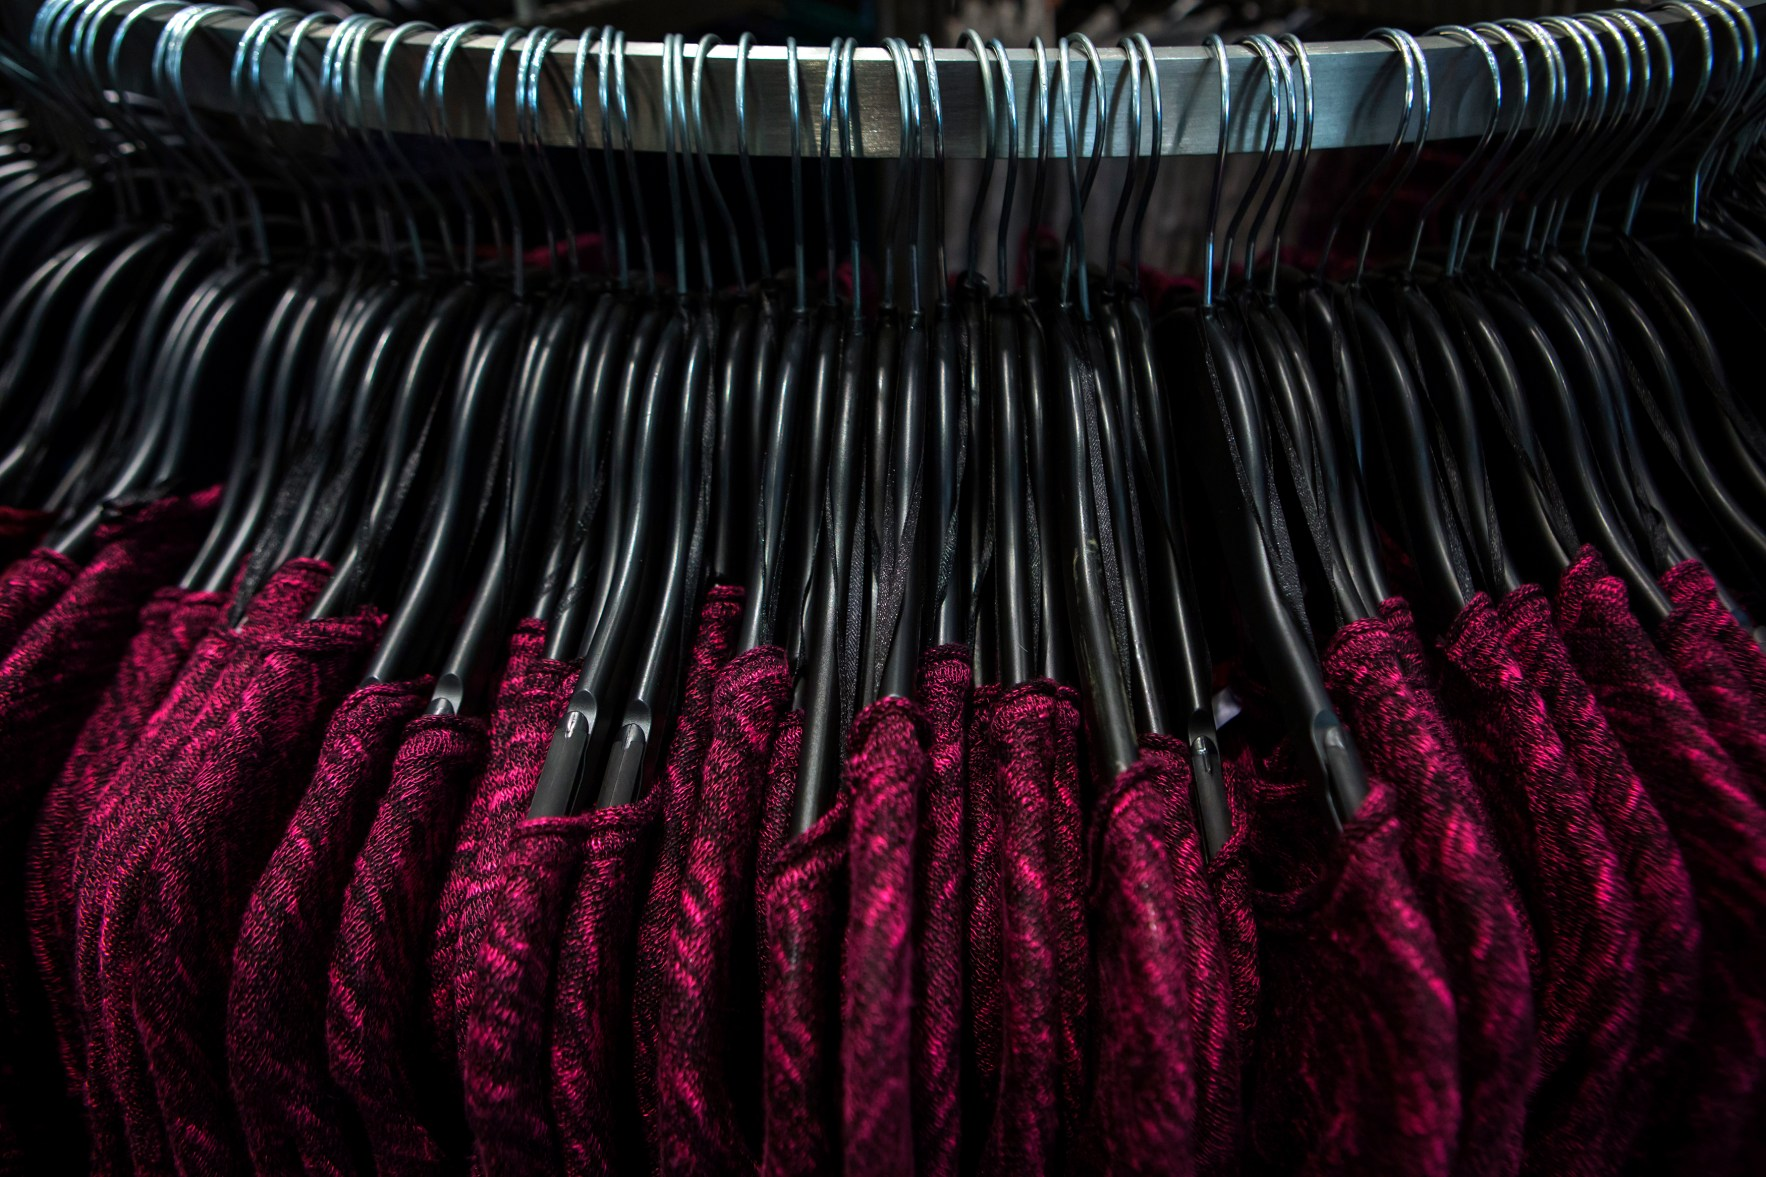 Sweaters are seen on a rack at H&M on Thanksgiving Day in New York November 28, 2013.